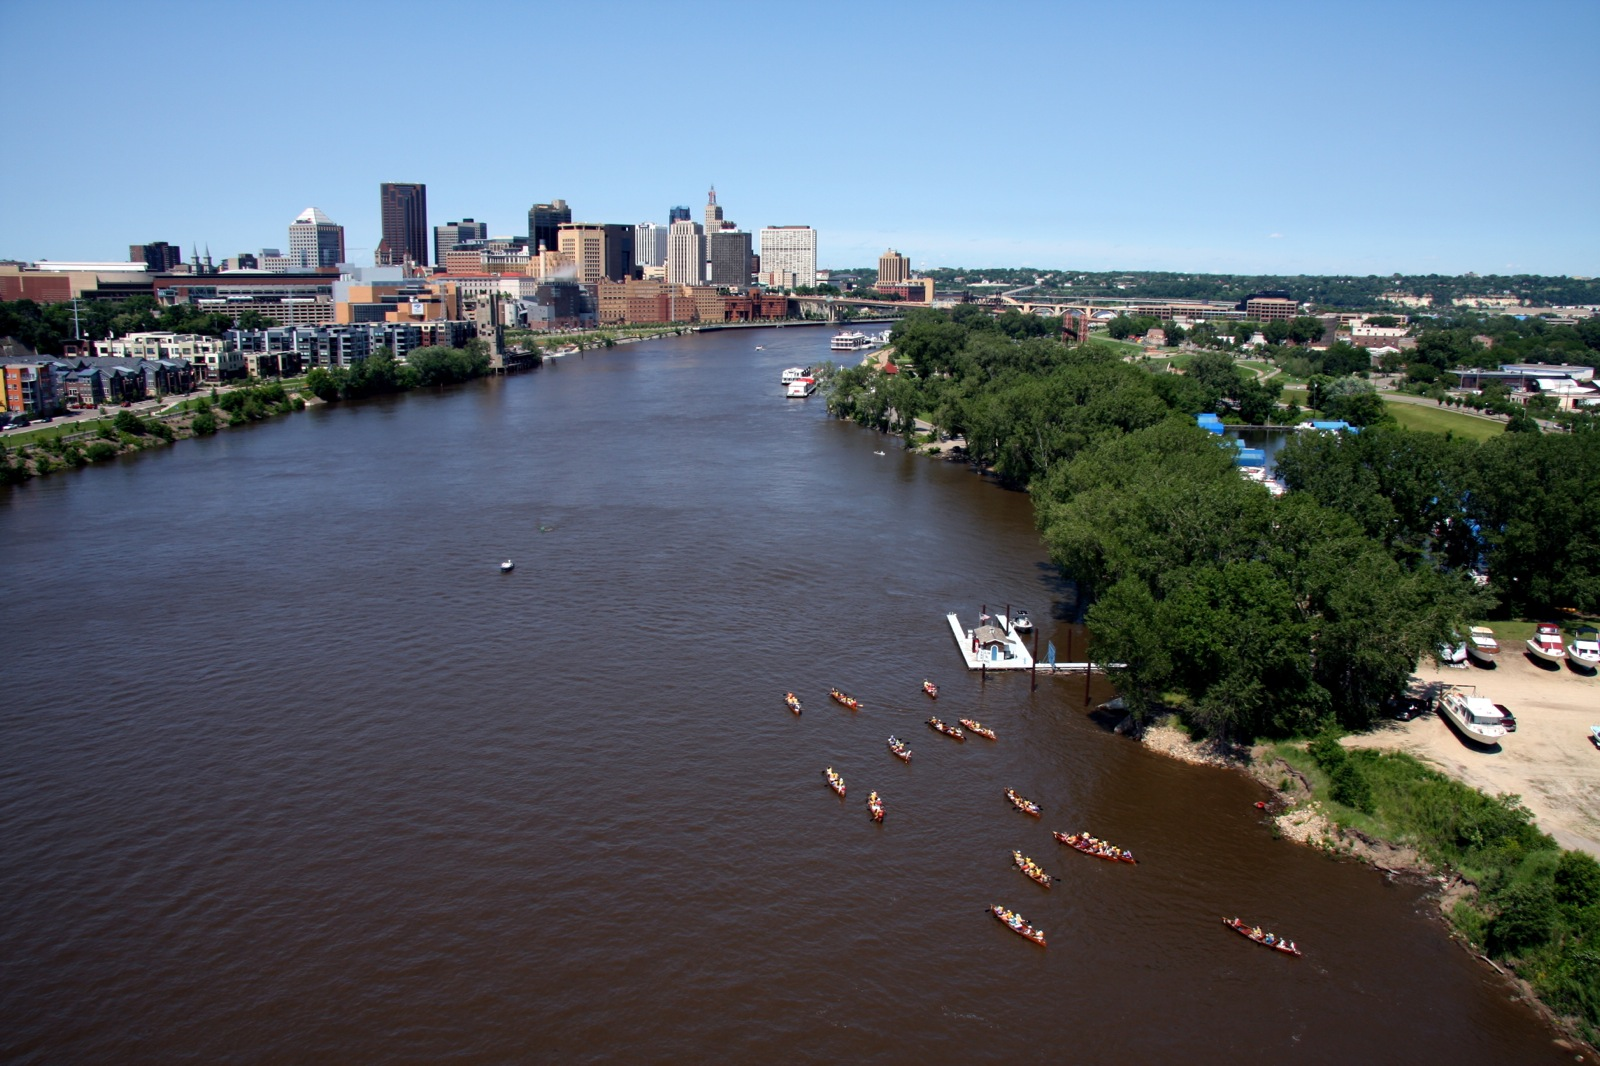 A fleet of voyageur canoes makes a proud site on the open river with the city of Saint Paul in the background.